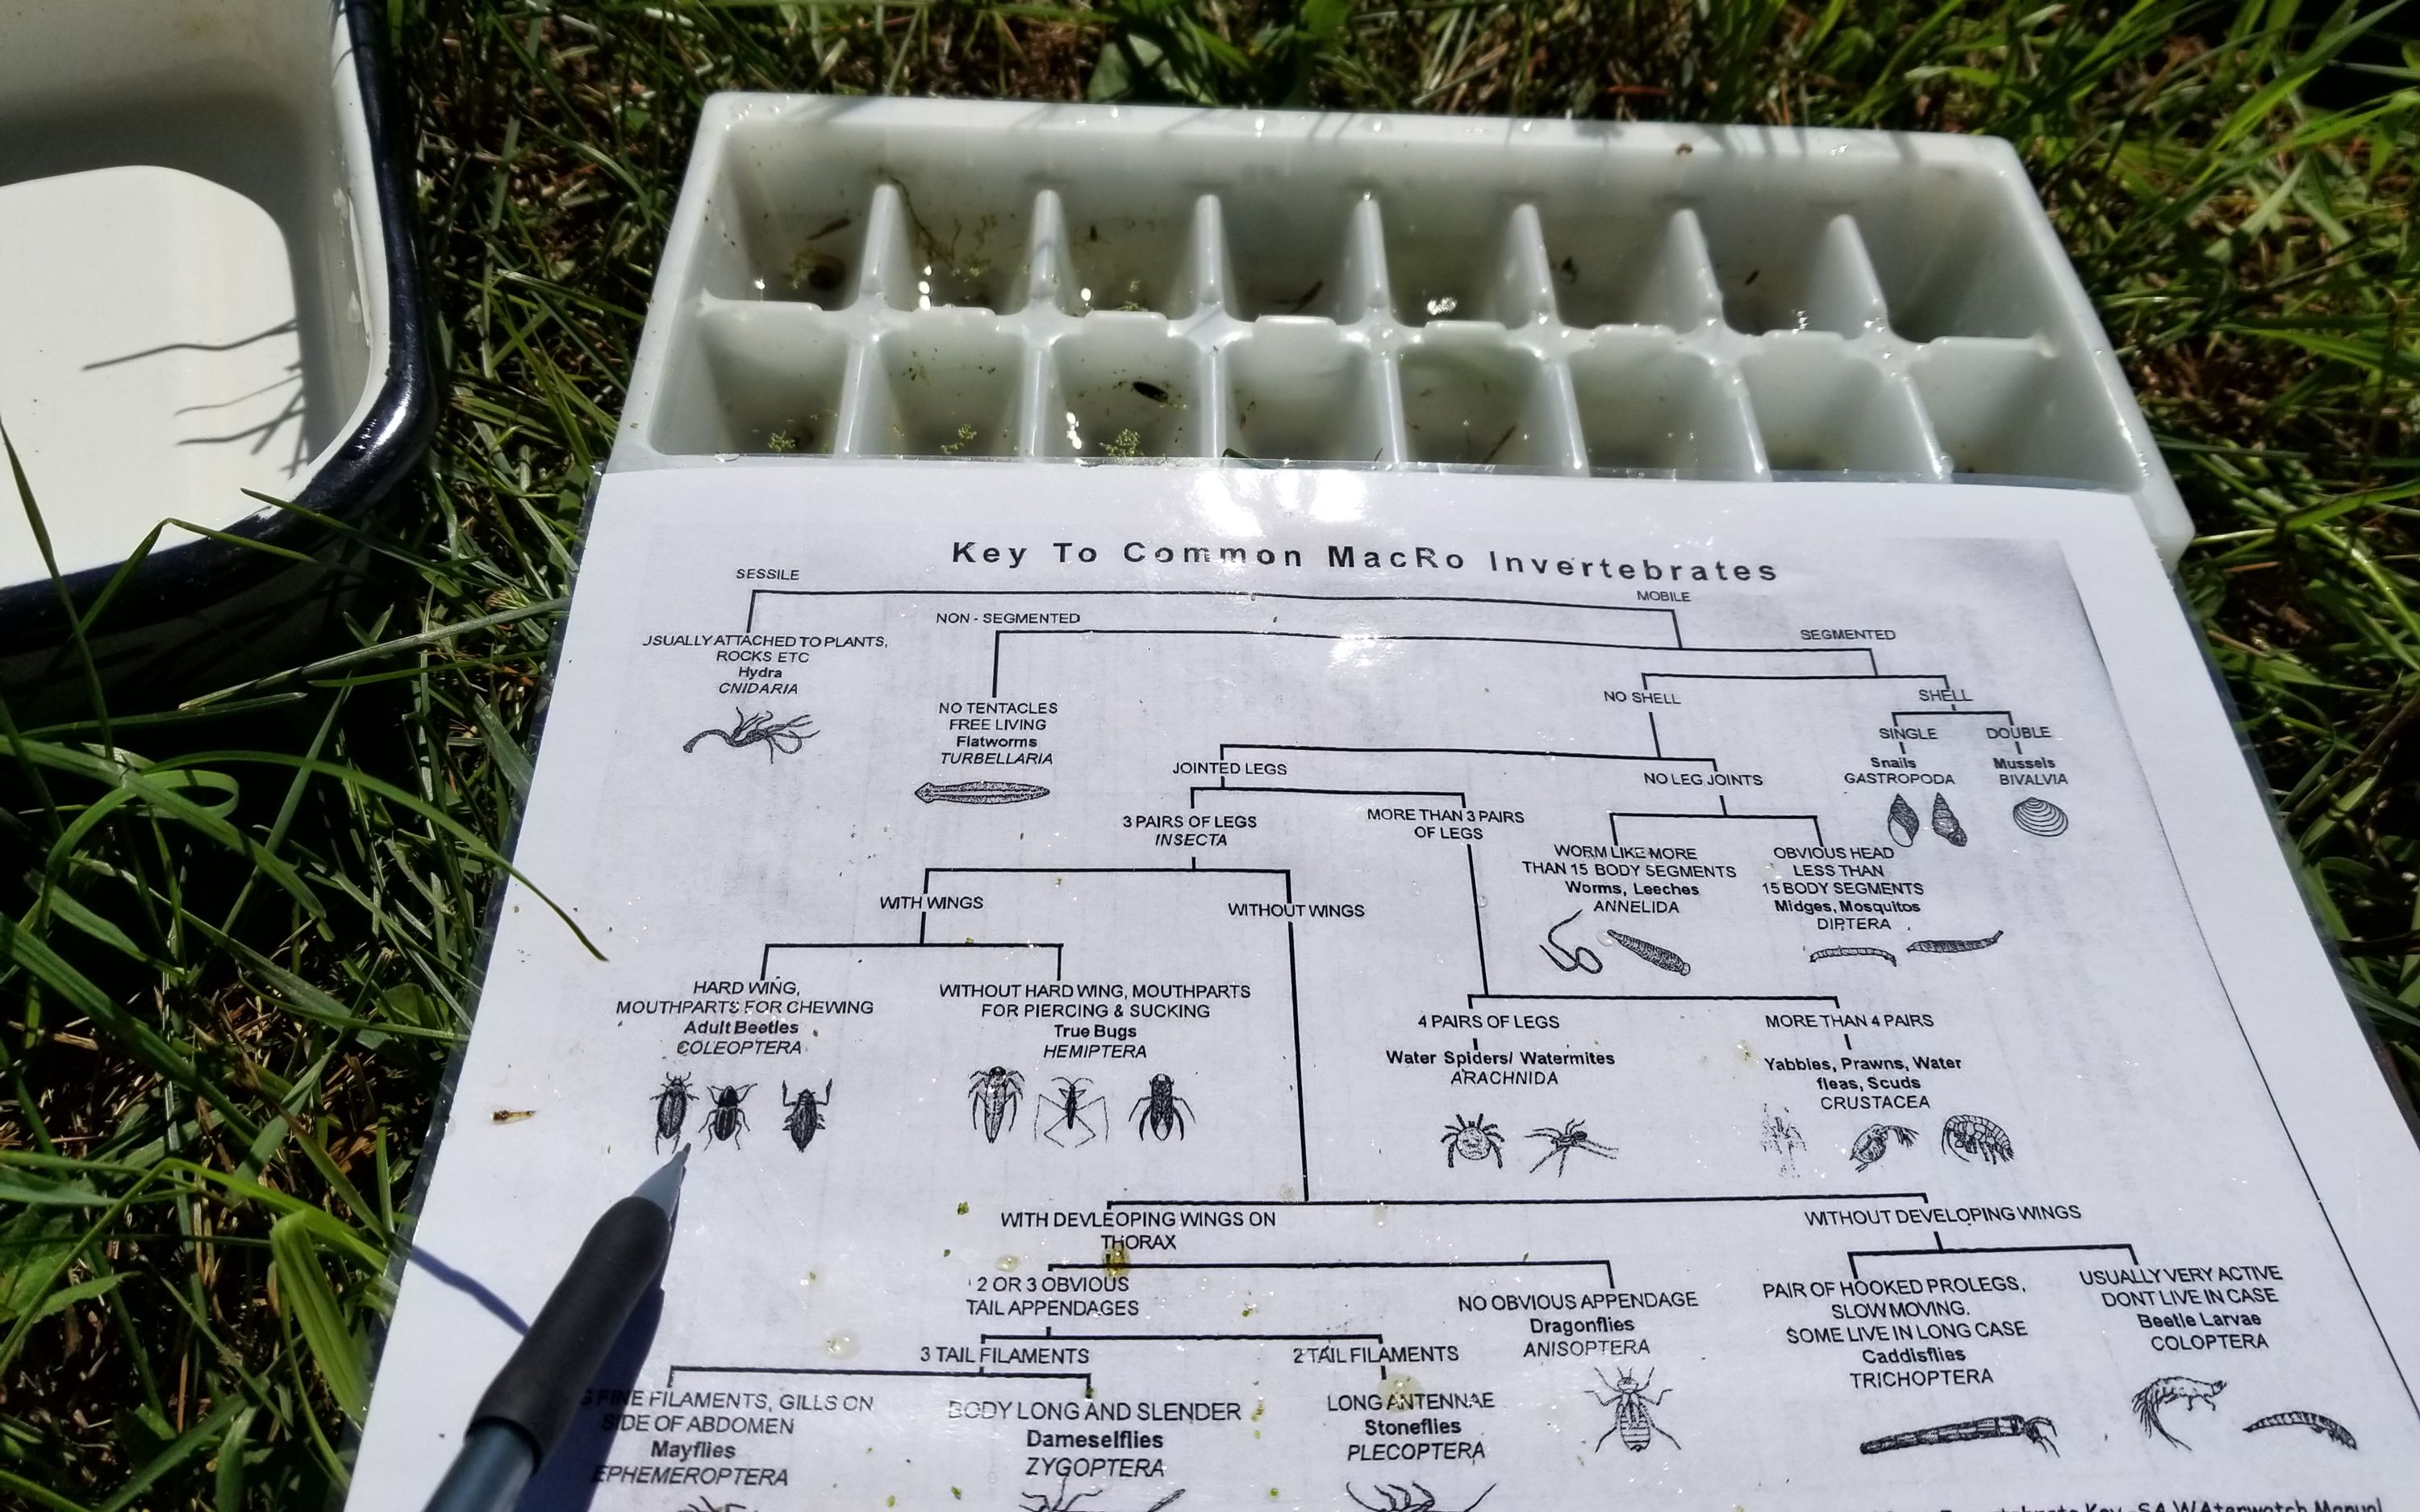 Worksheet for sorting different invertebrates into trays to gain a sense of the diversity in one of the ponds in Lux Arbor